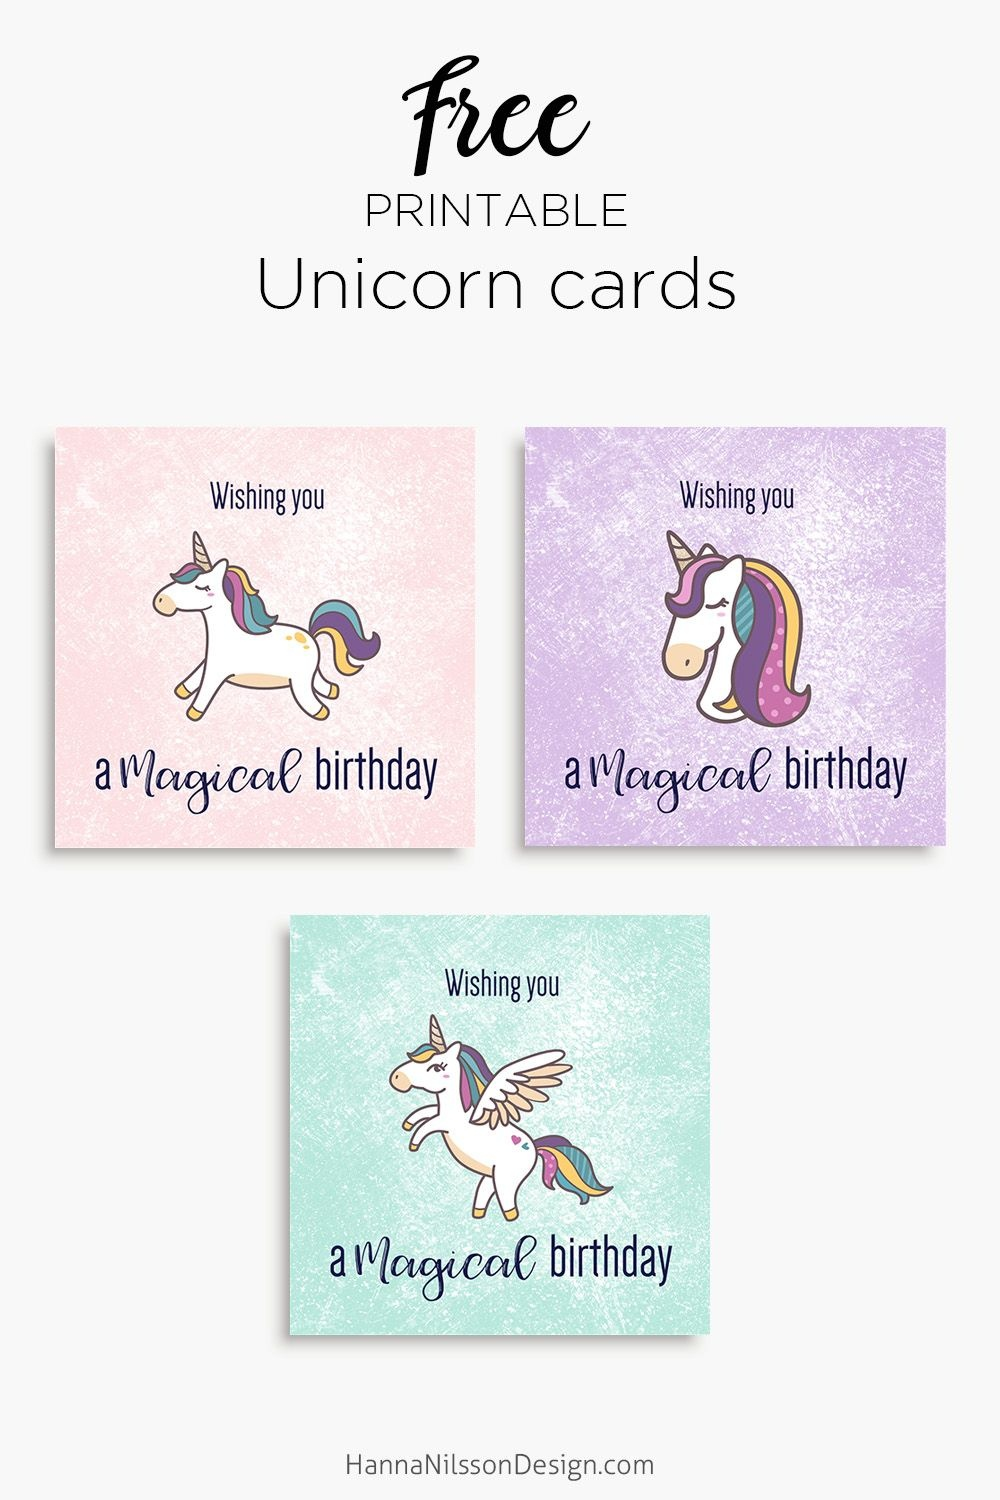 Magical Unicorn Birthday Cards | Free Printable | Download - Free Printable Easter Cards For Grandchildren